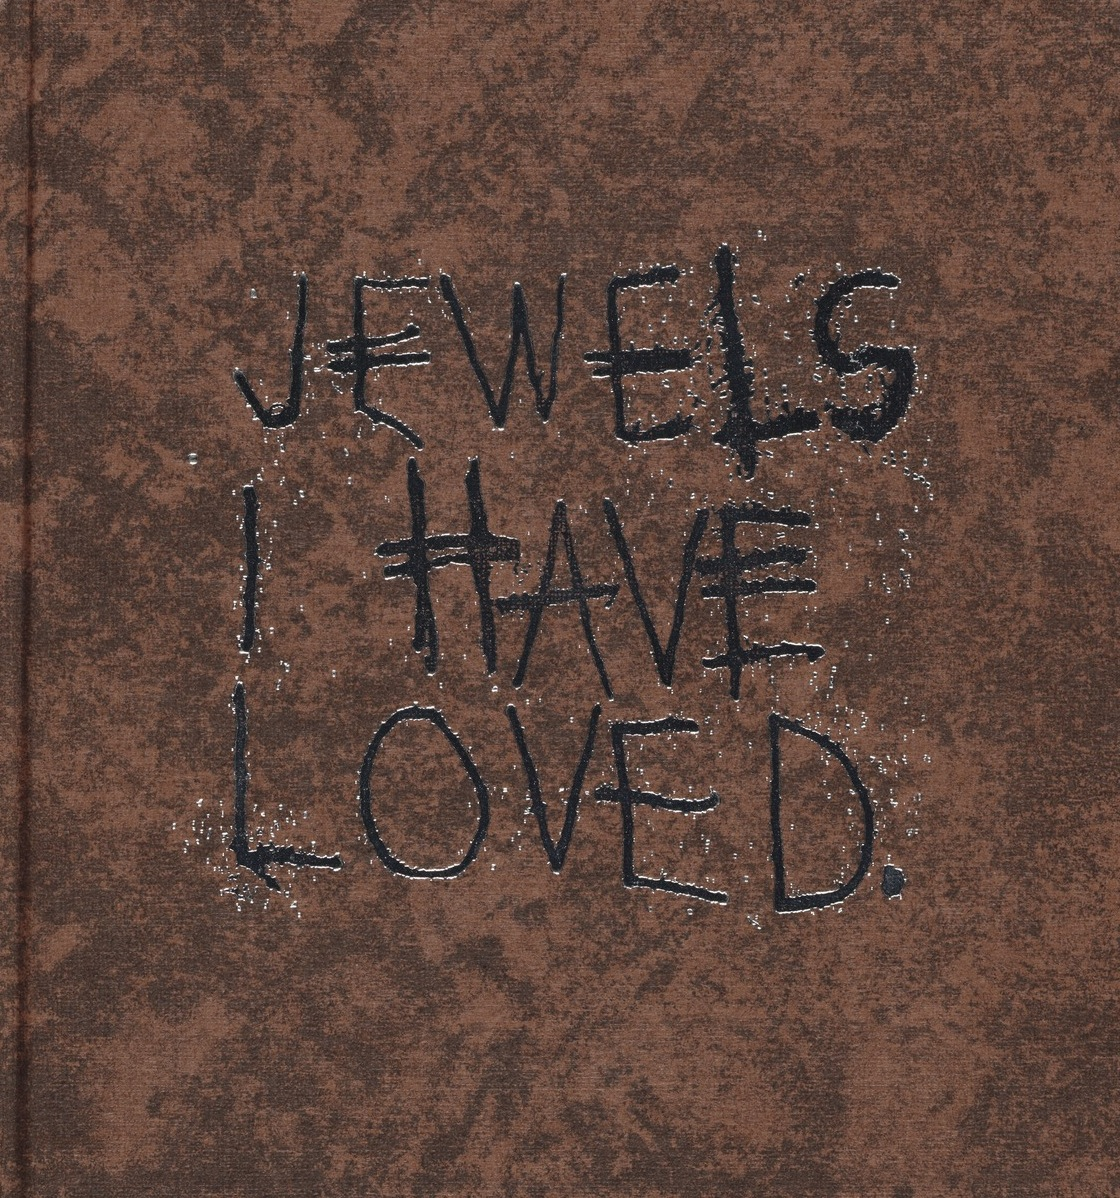 Jewels I have loved